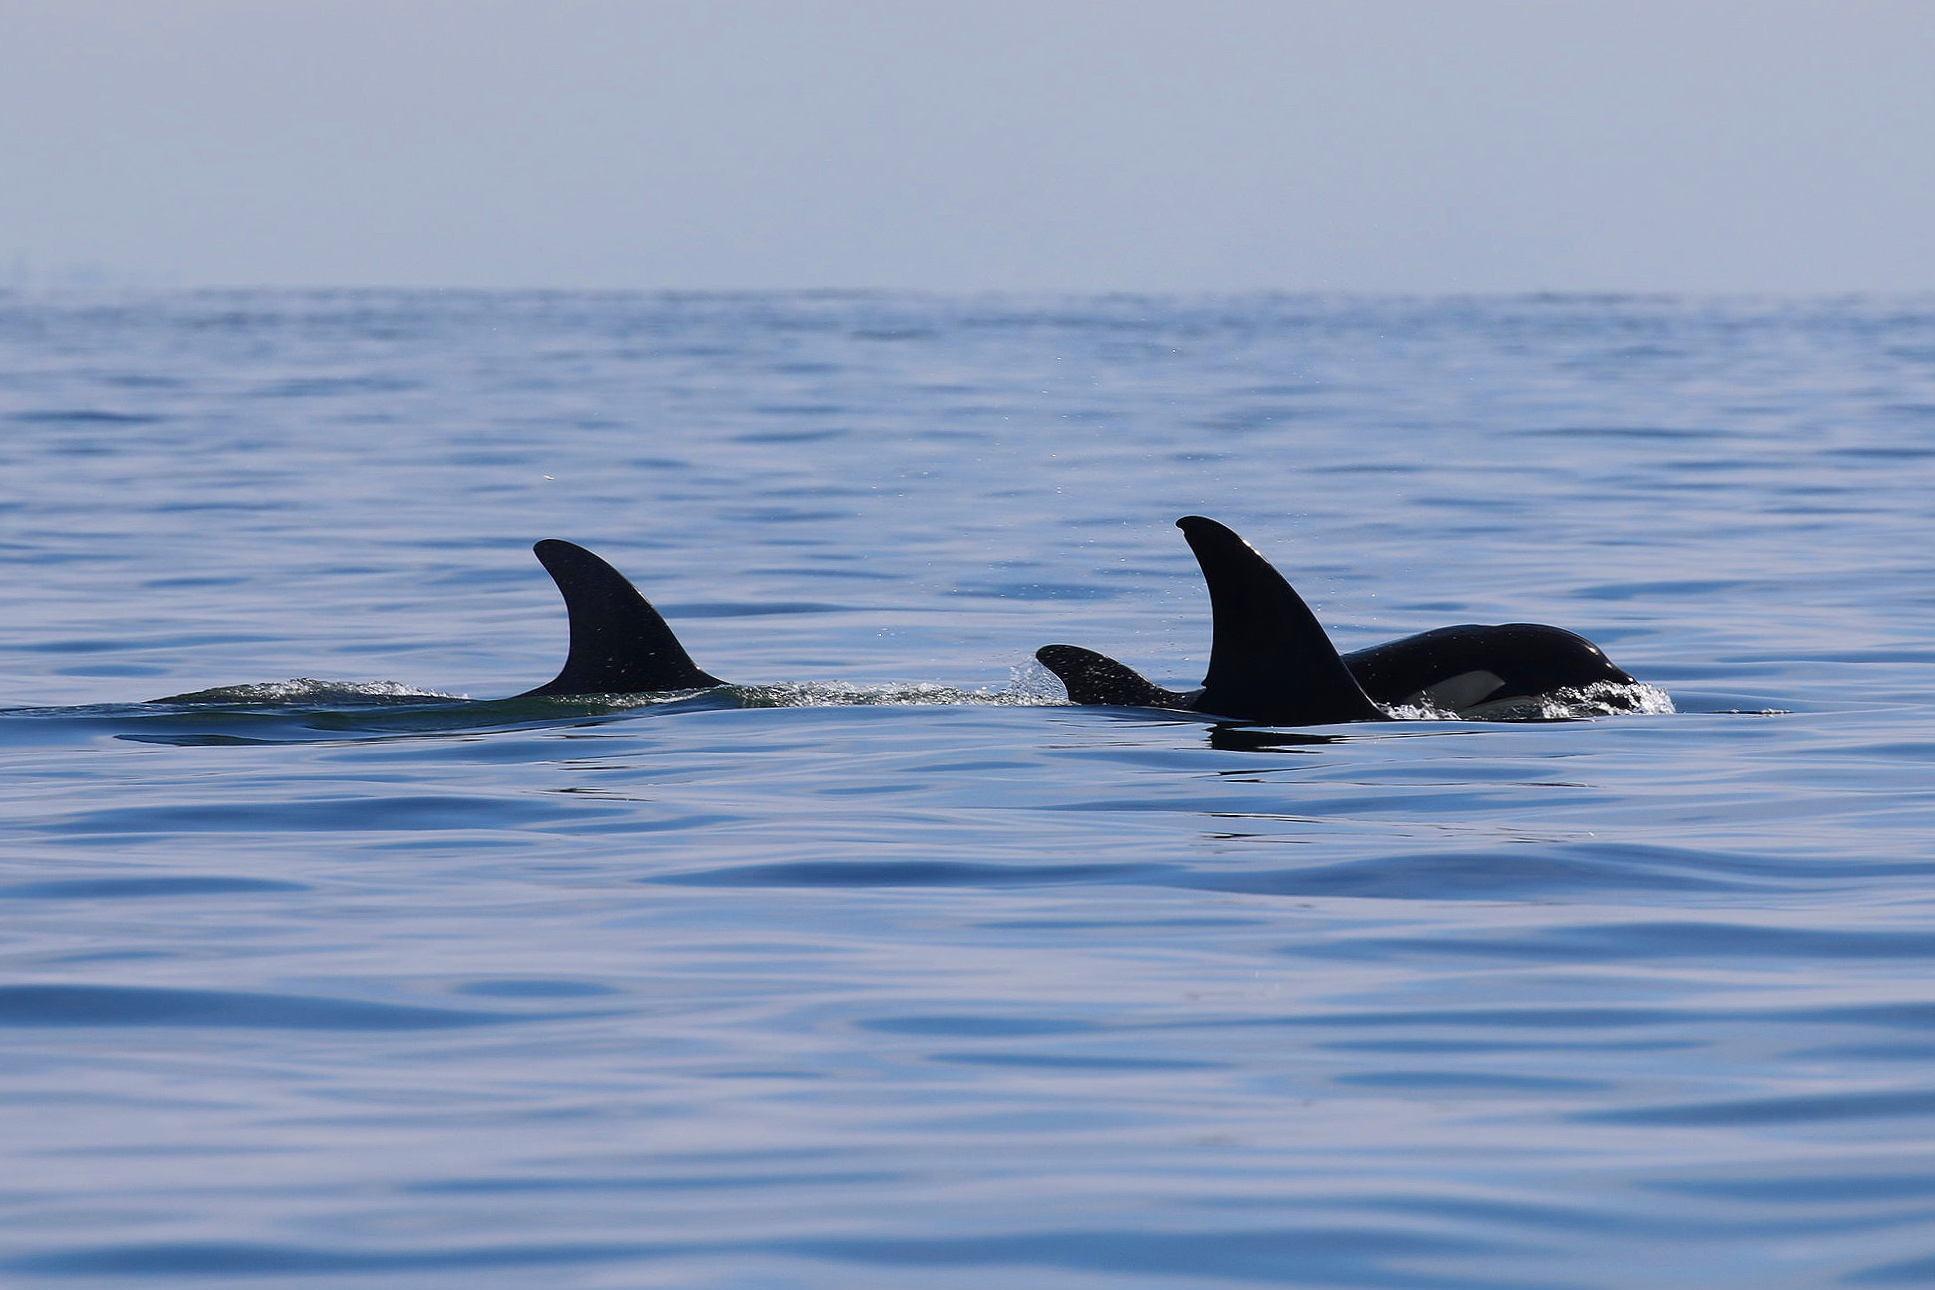 Left to right: T36B2 (Greenfelder), T36B3, and their mother T36B (Tattertip). Photo by Cheyenne Brewster (10:30).